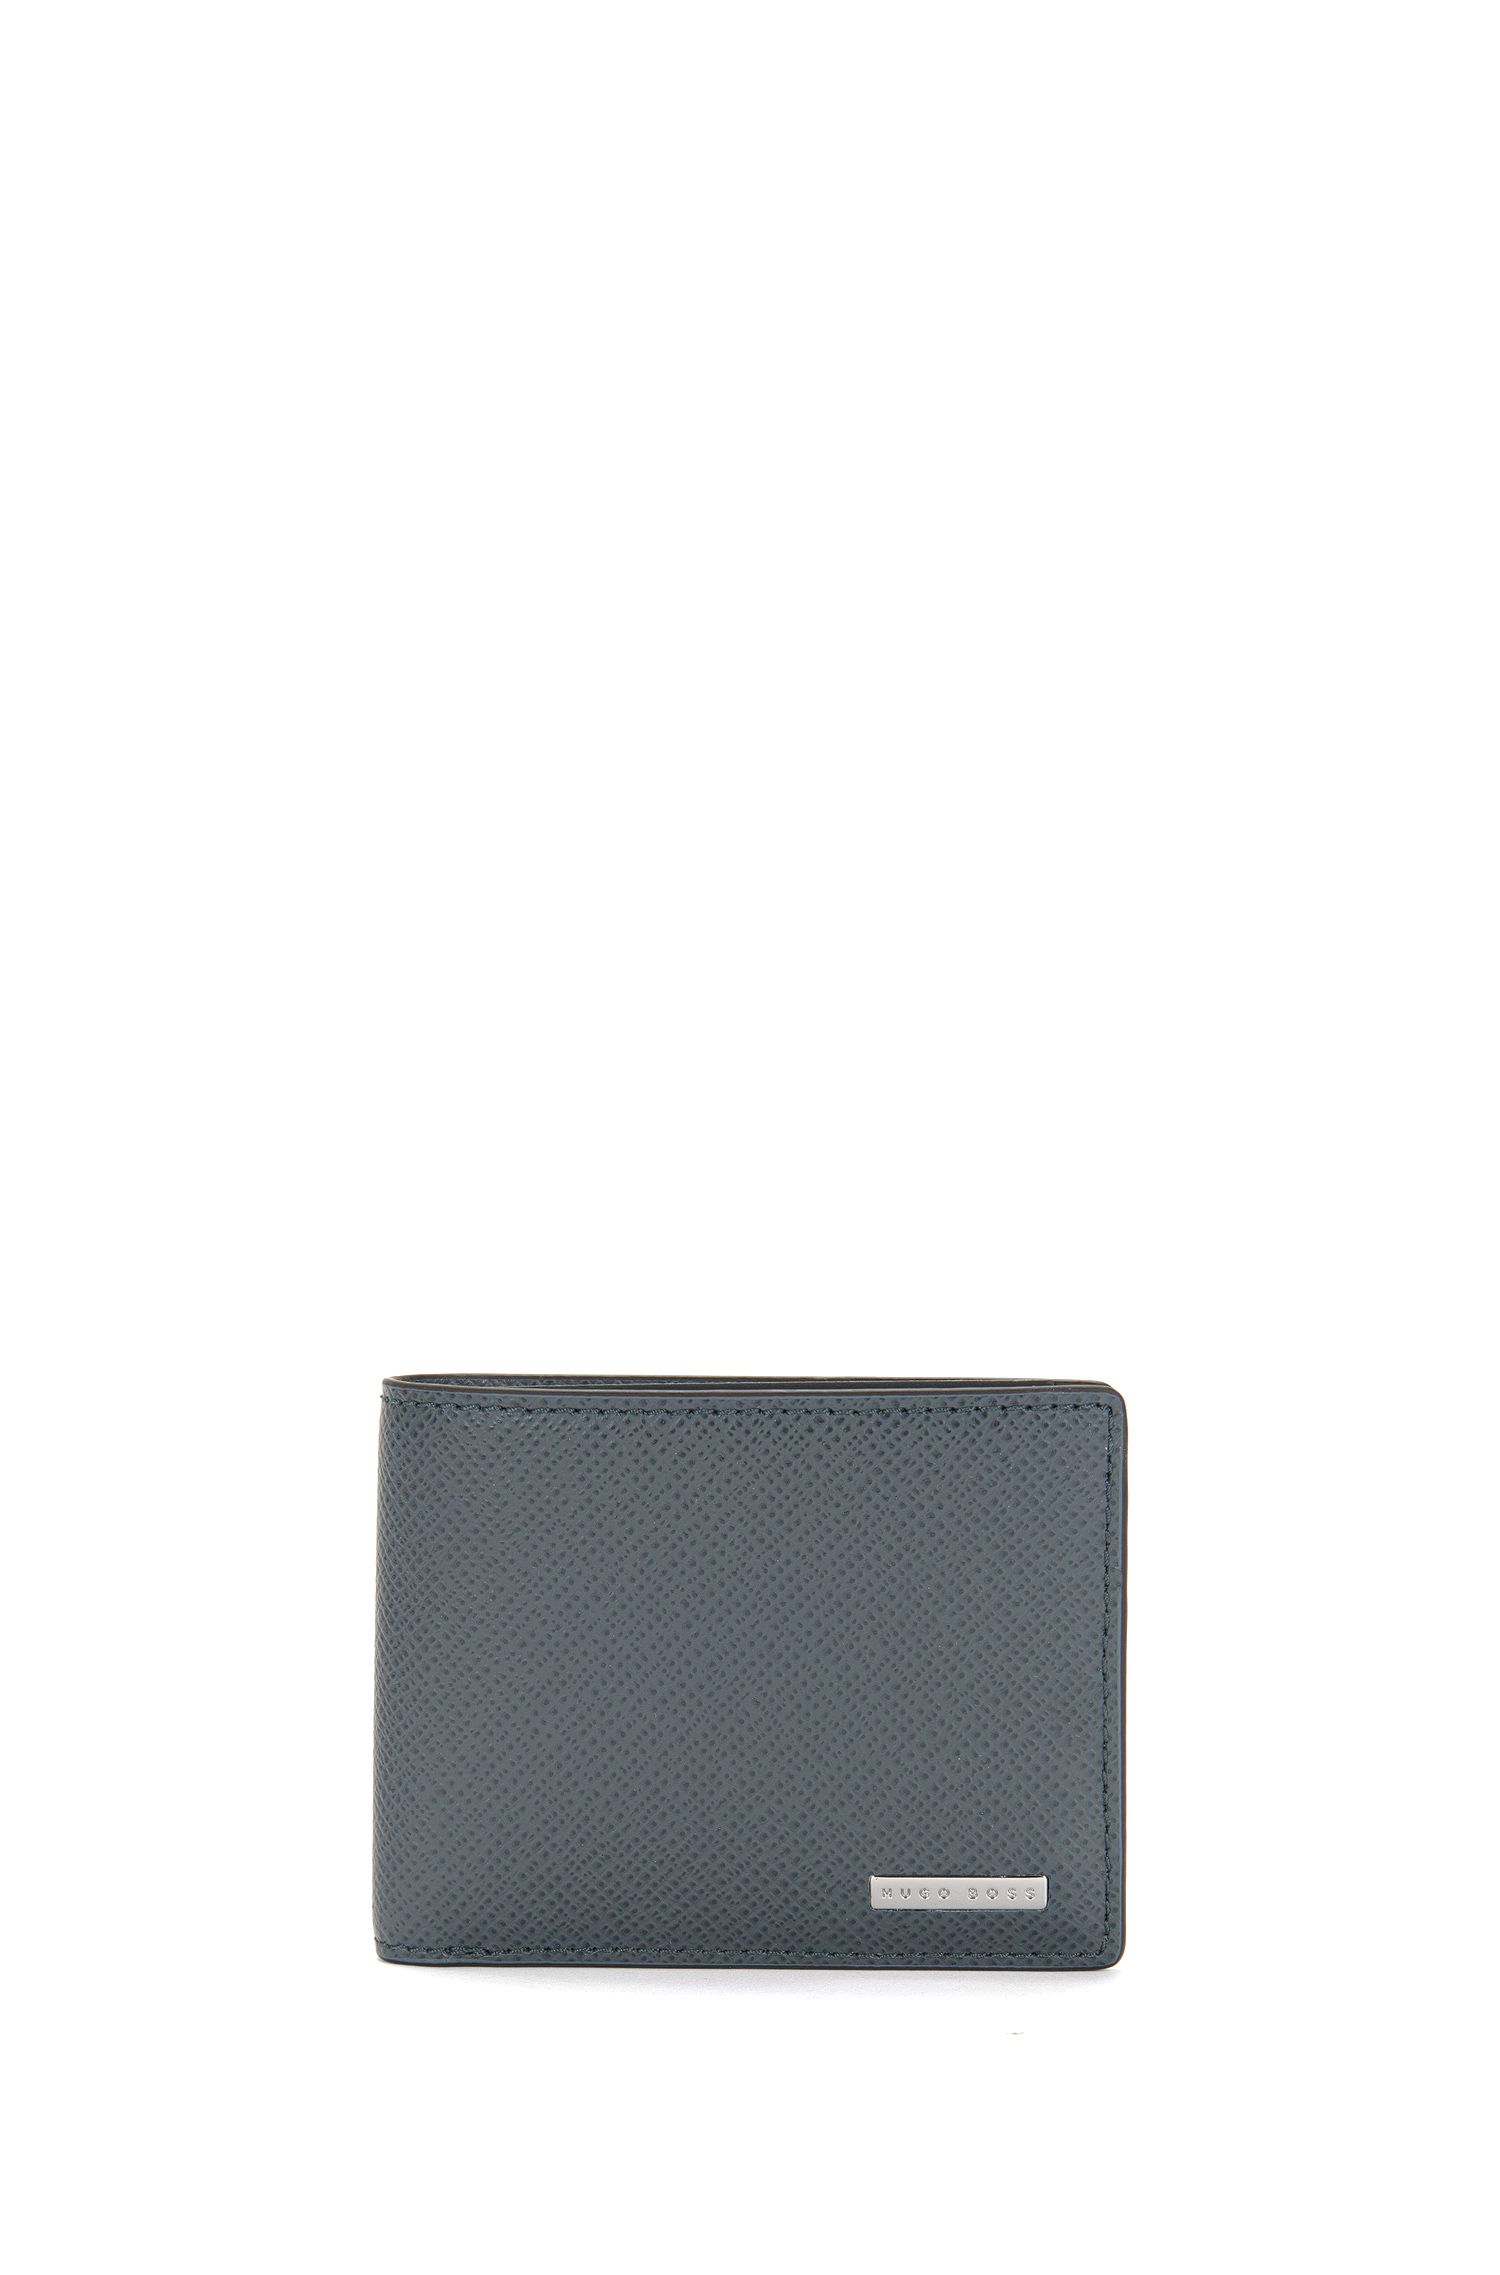 Small-format leather wallet: 'Signature_6 cc'